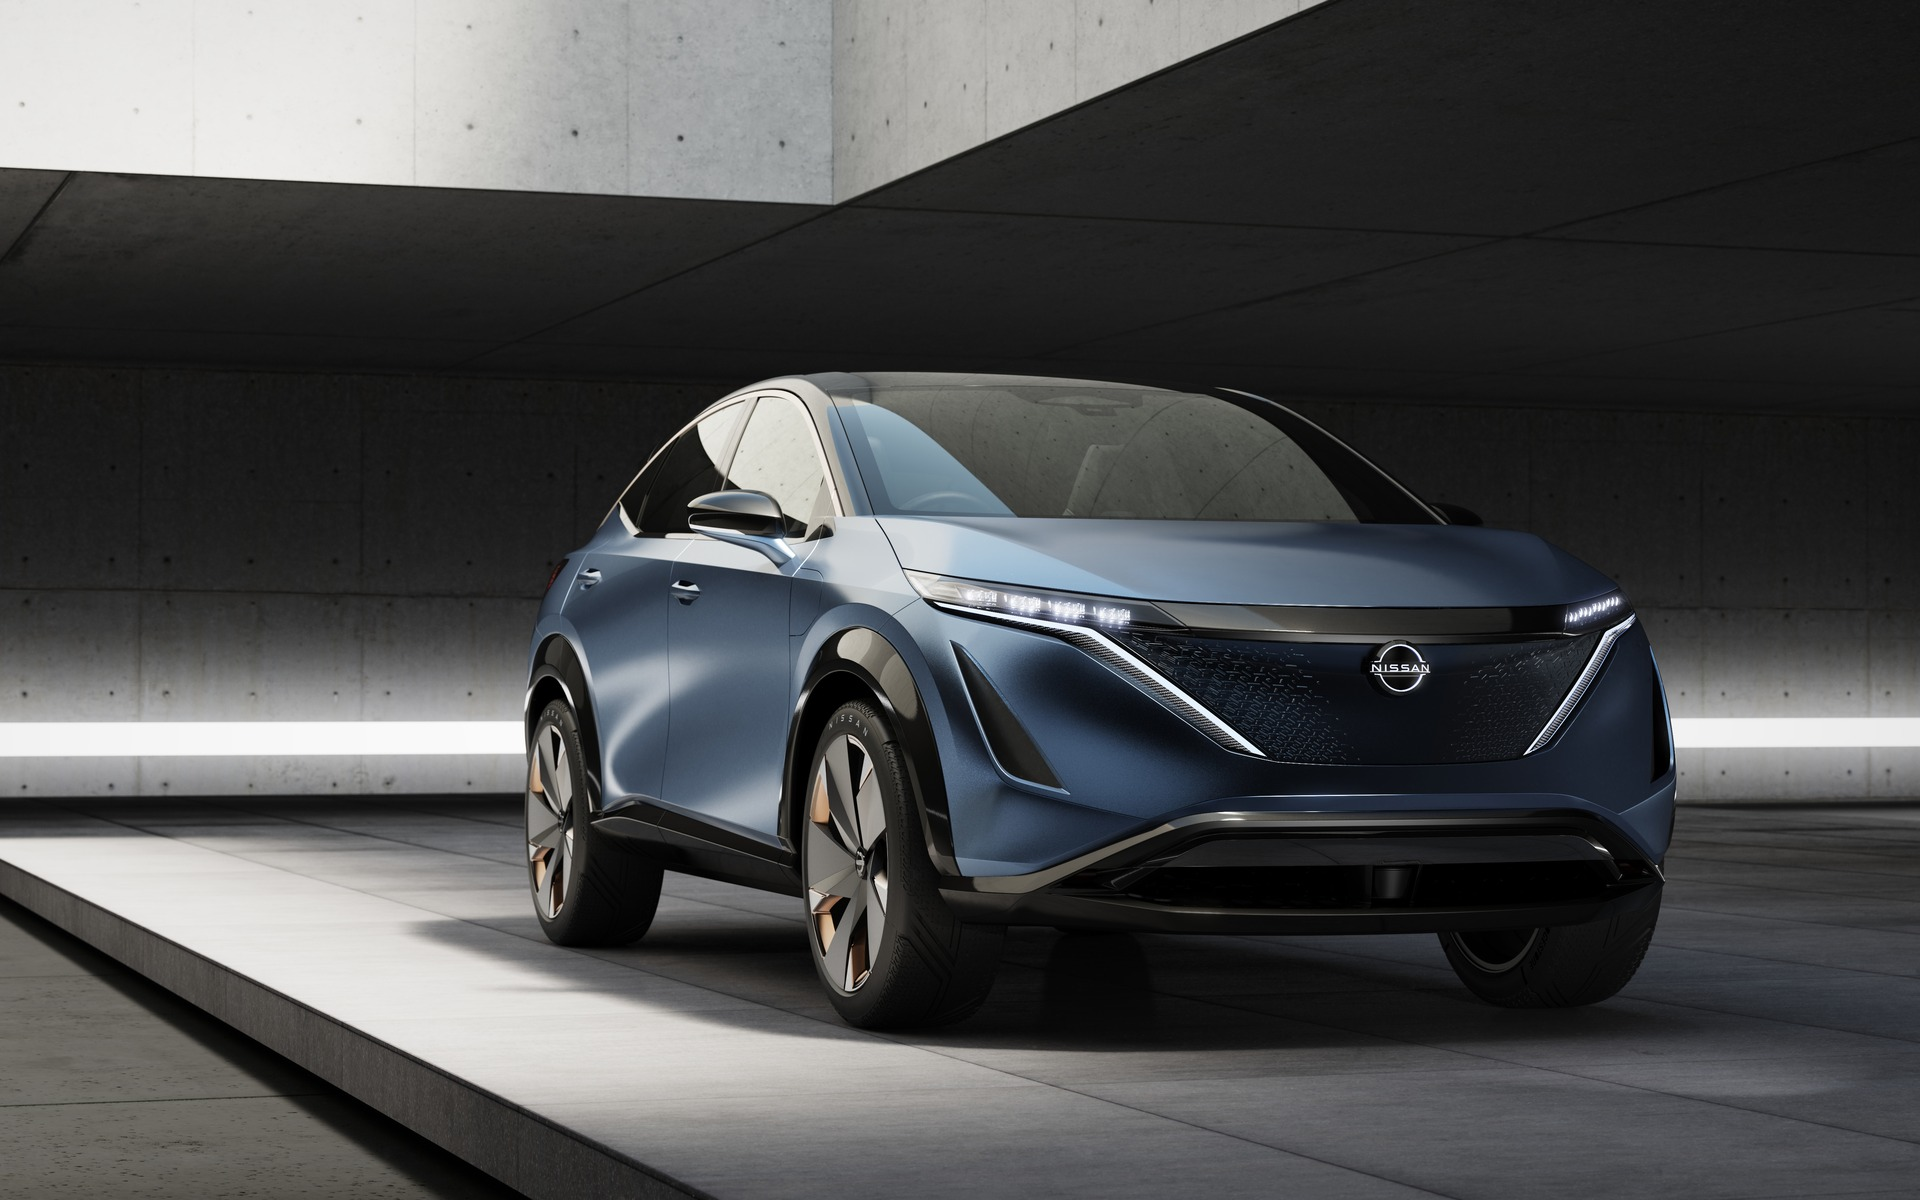 Nissan Ariya Concept: A Bold Look to the Future - The Car Guide